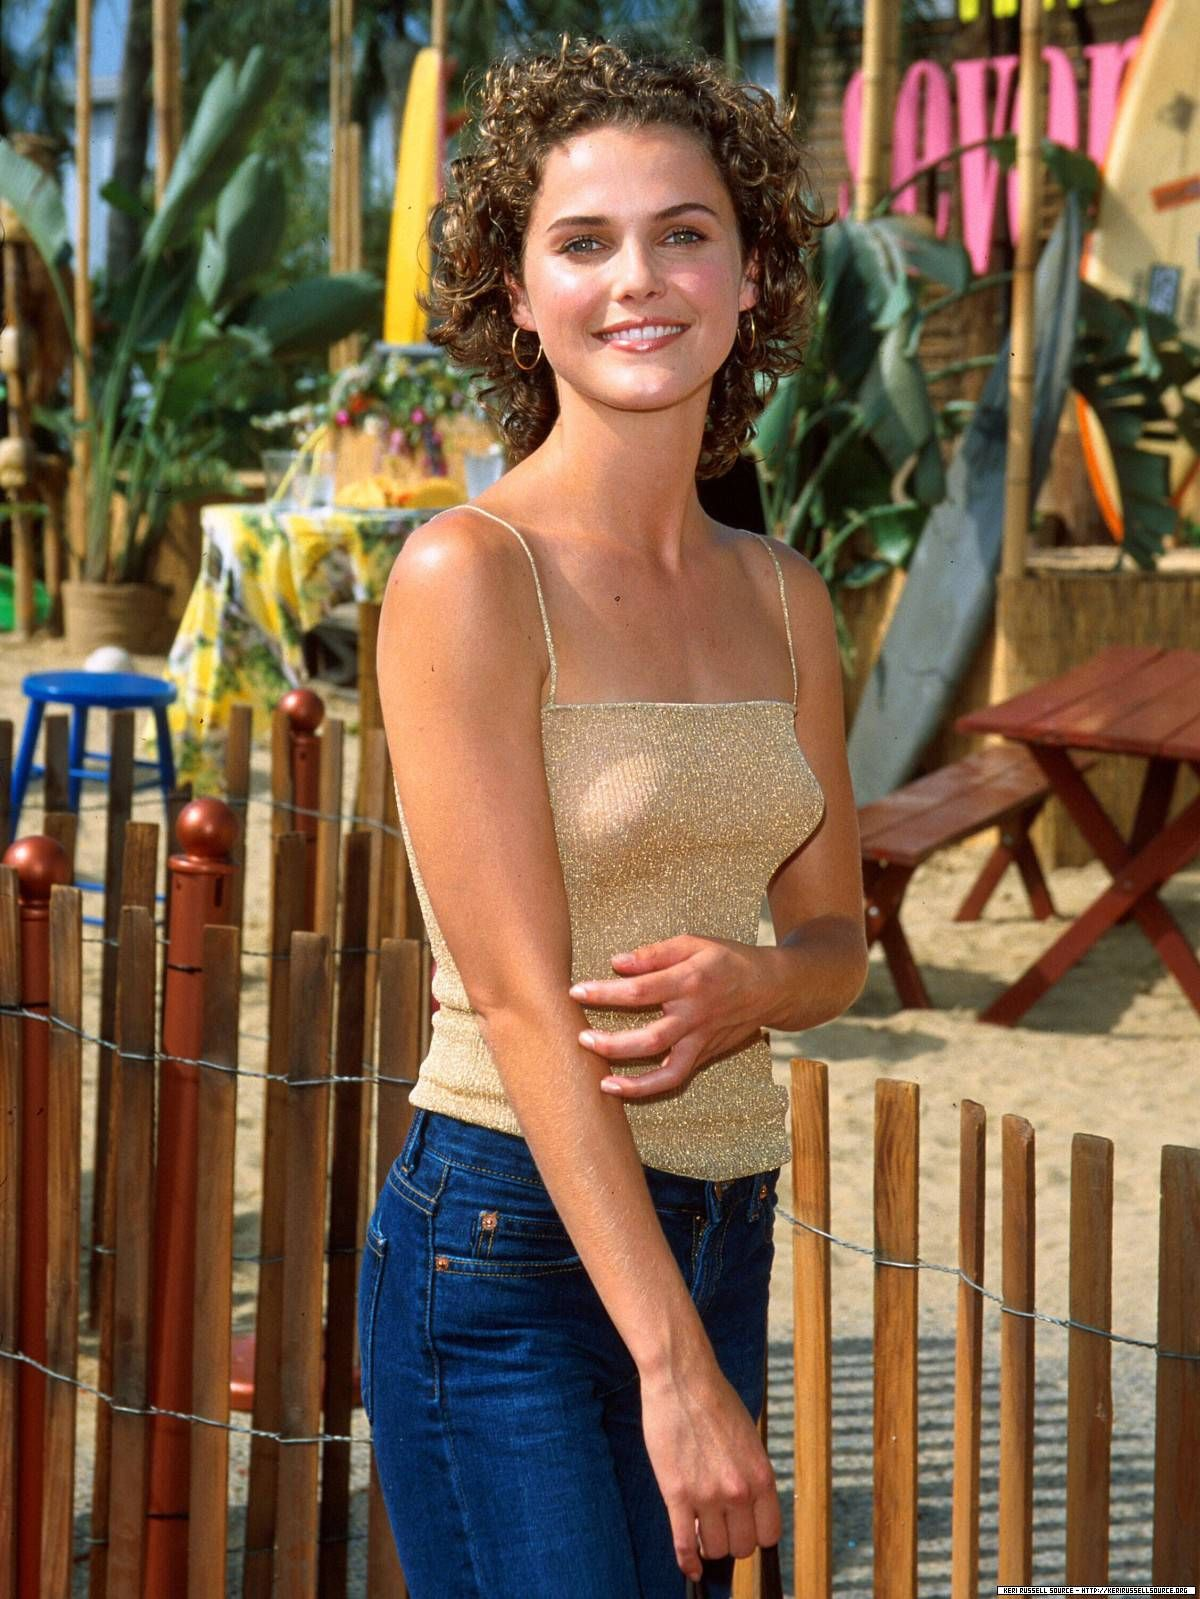 Cleavage Keri Russell nude (73 photos), Topless, Cleavage, Twitter, cameltoe 2017